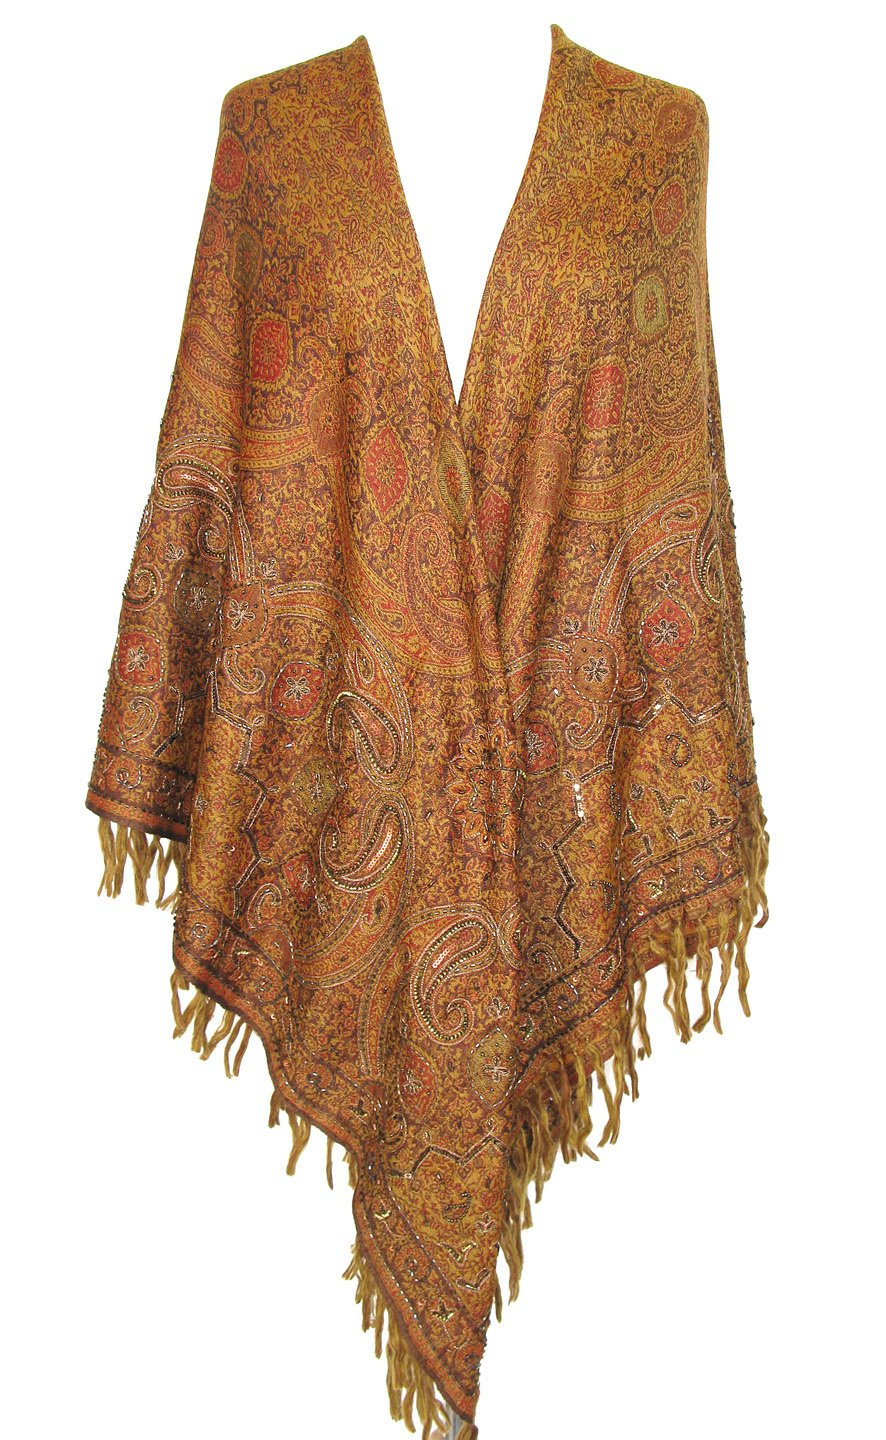 Embroidered Beaded Paisley Wool Shawl Wrap Scarf Square Throw Antique Gold 60'' x 60''